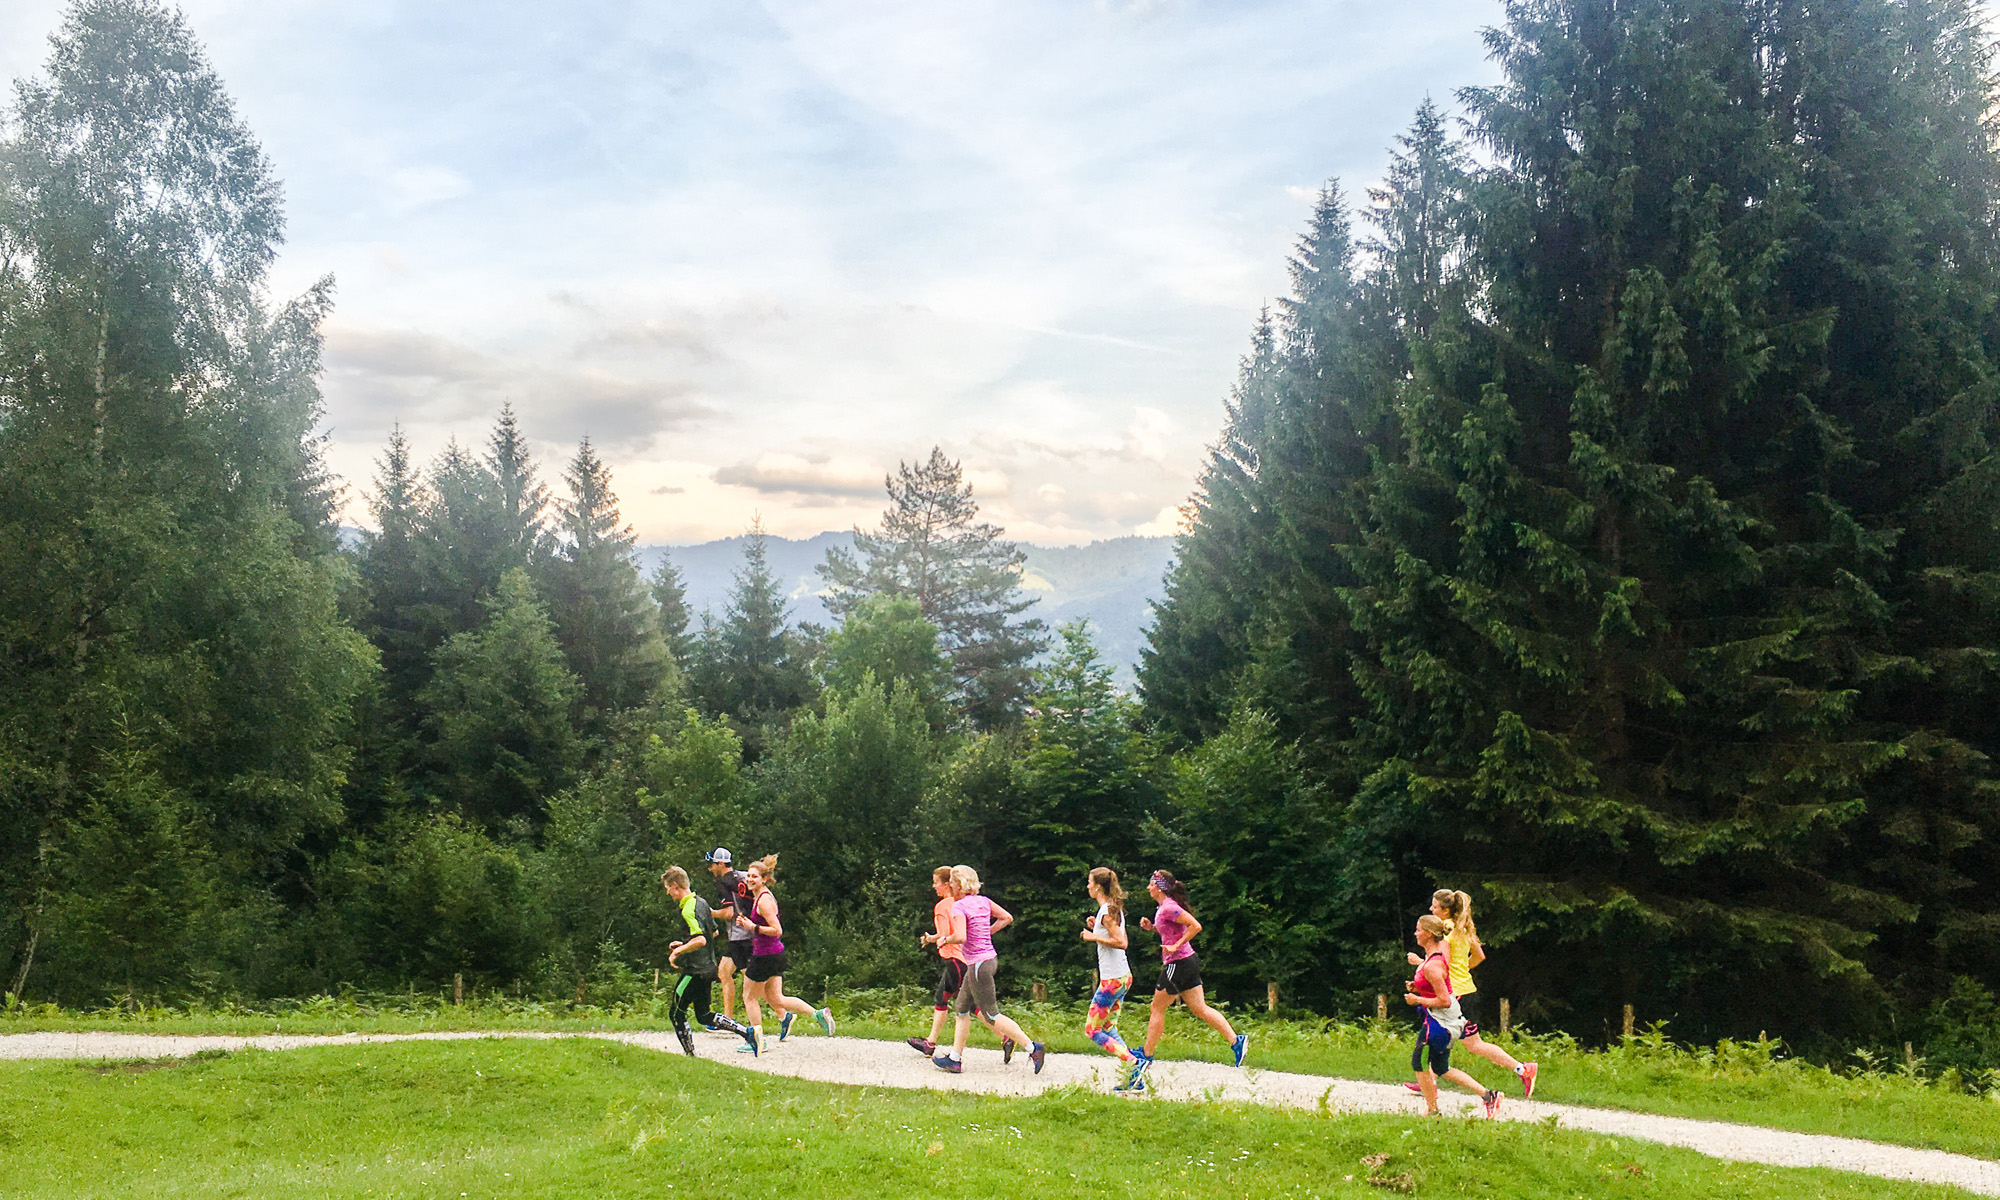 gap-pub-run-partenkirchen